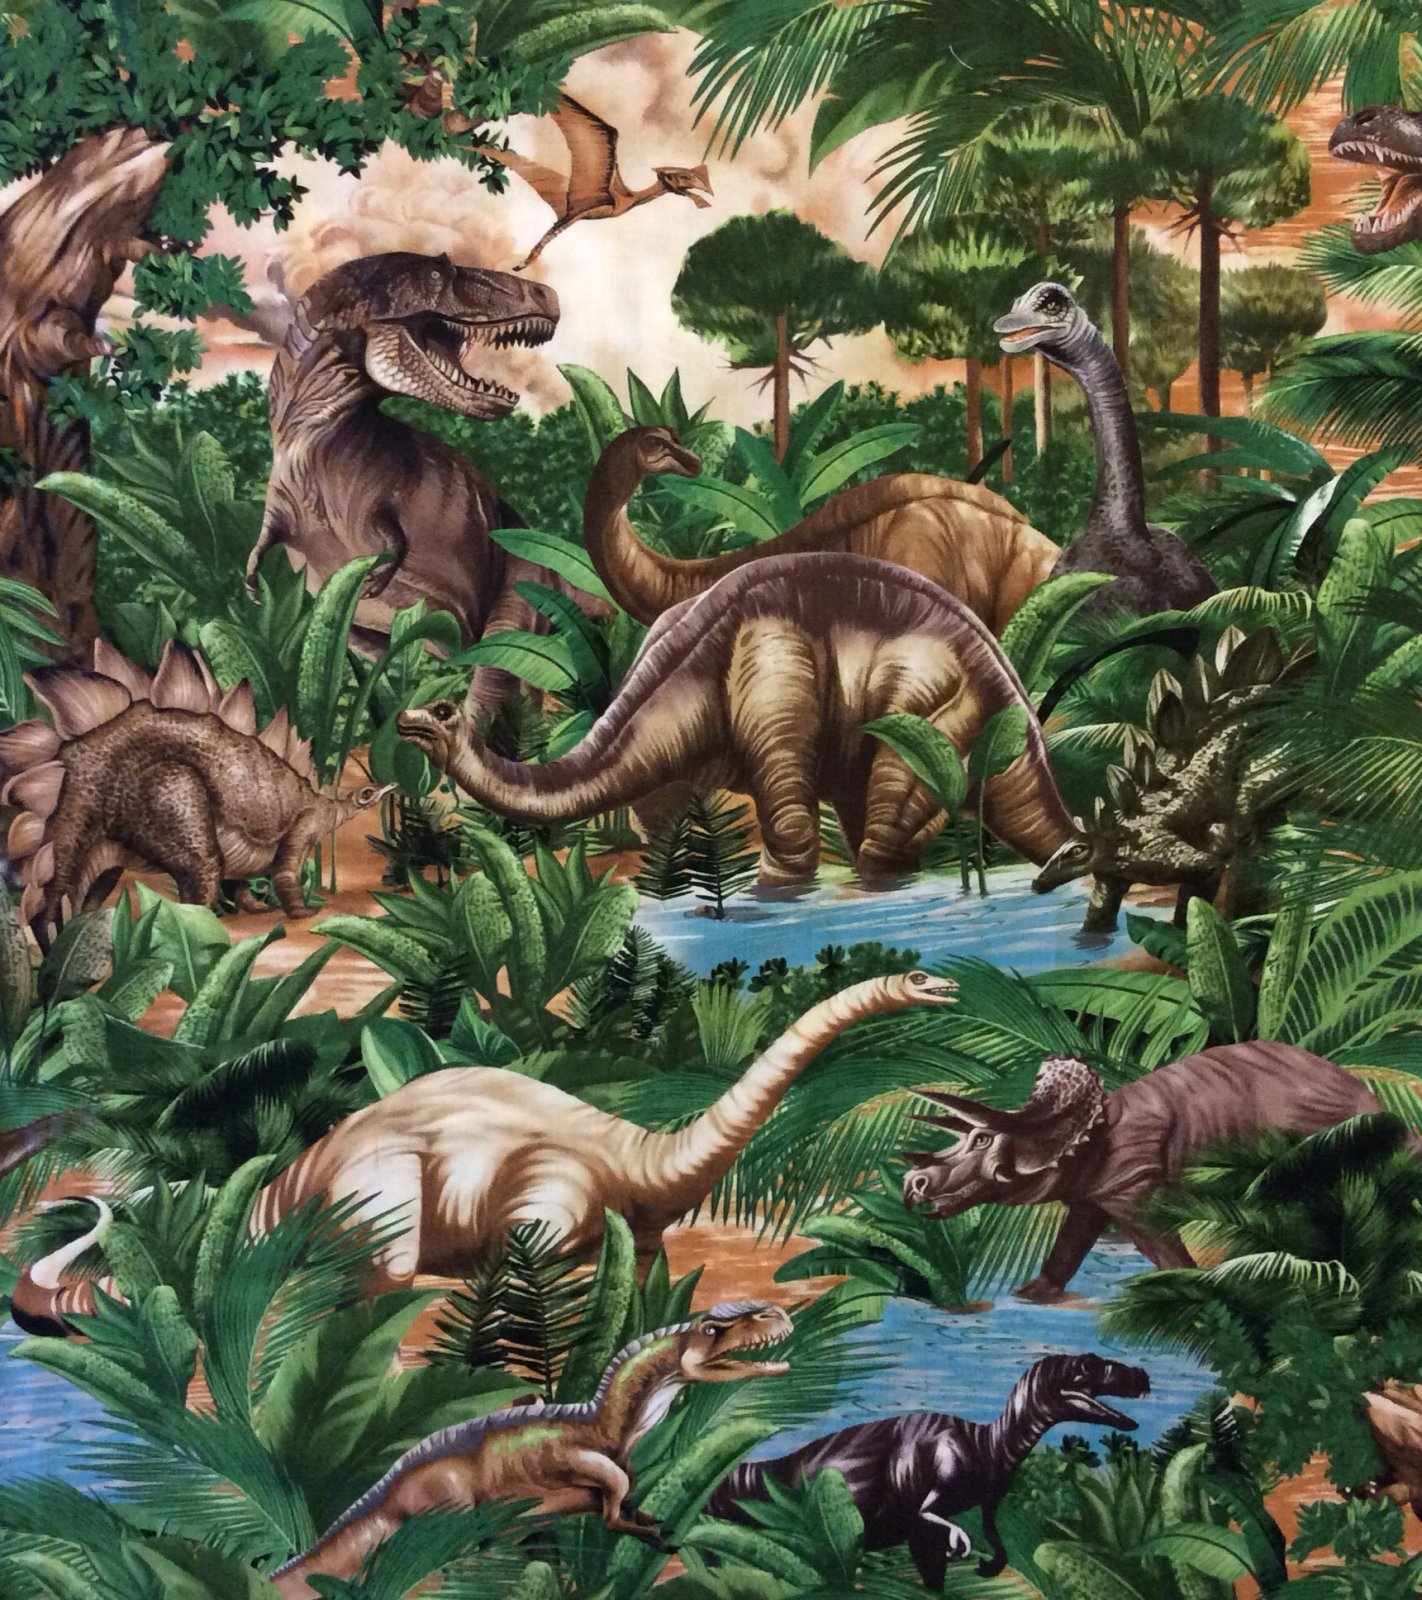 FAT QUARTER! Dinosaur T-Rex Jurassic Period Stegosaurus Extinct Cotton Quilt Fabric RPFTT81